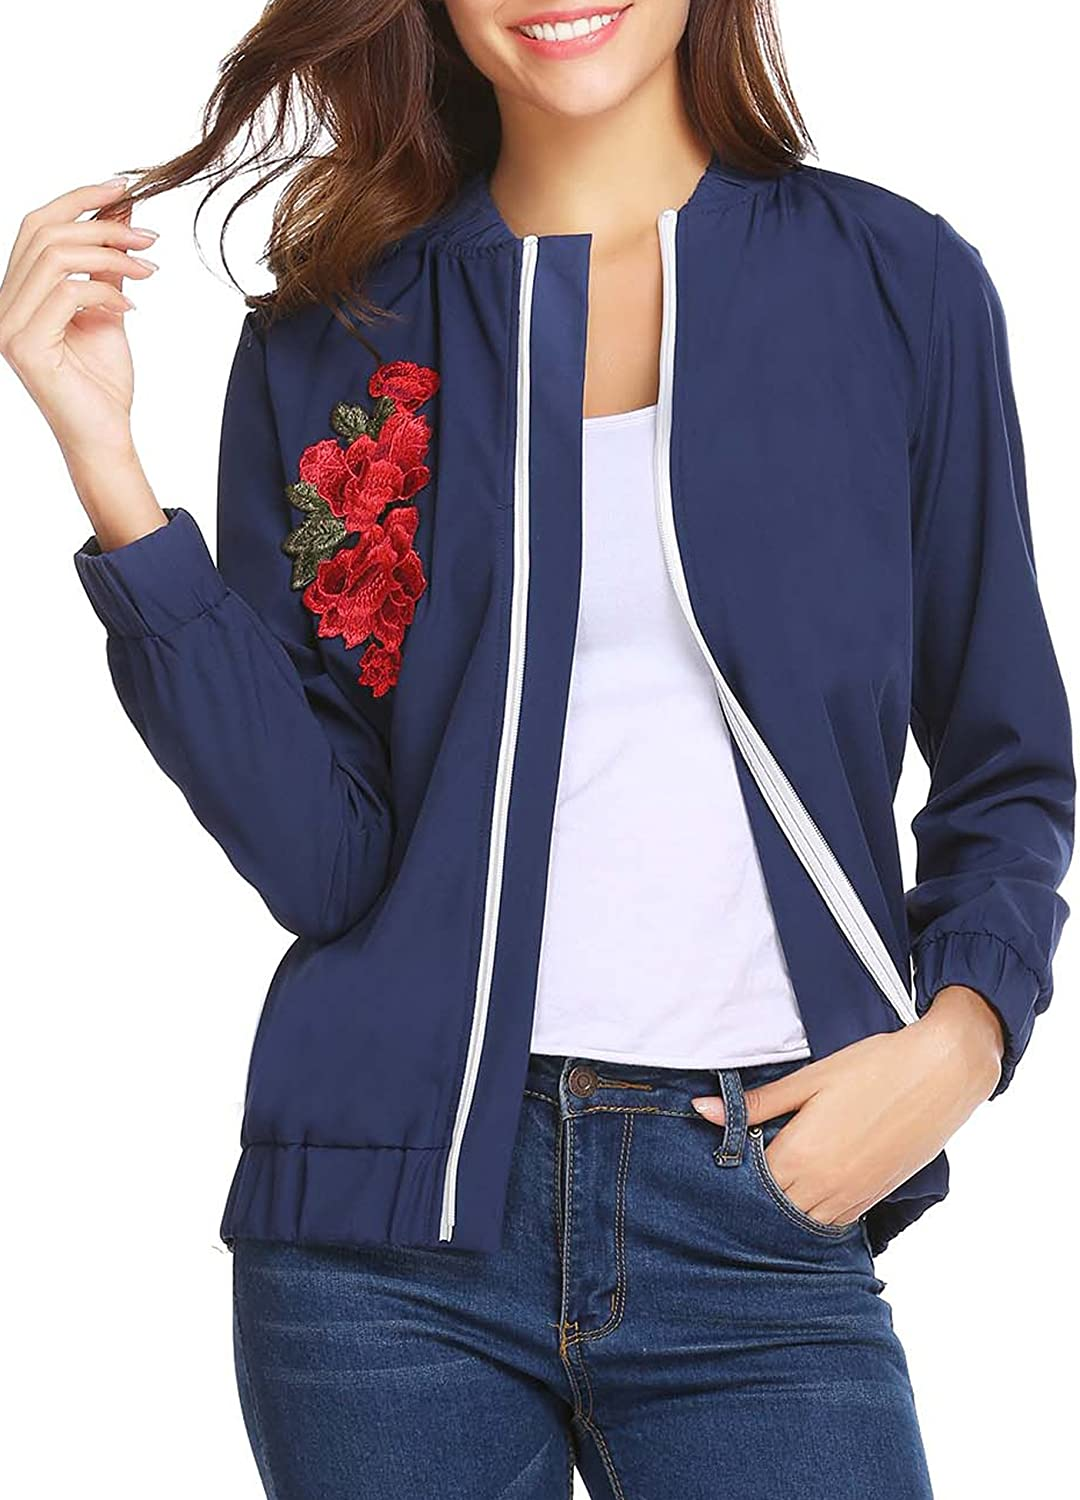 Elover Womens Classic Quilted Jacket Embroidered Zip Up Short Bomber Jacket Coat